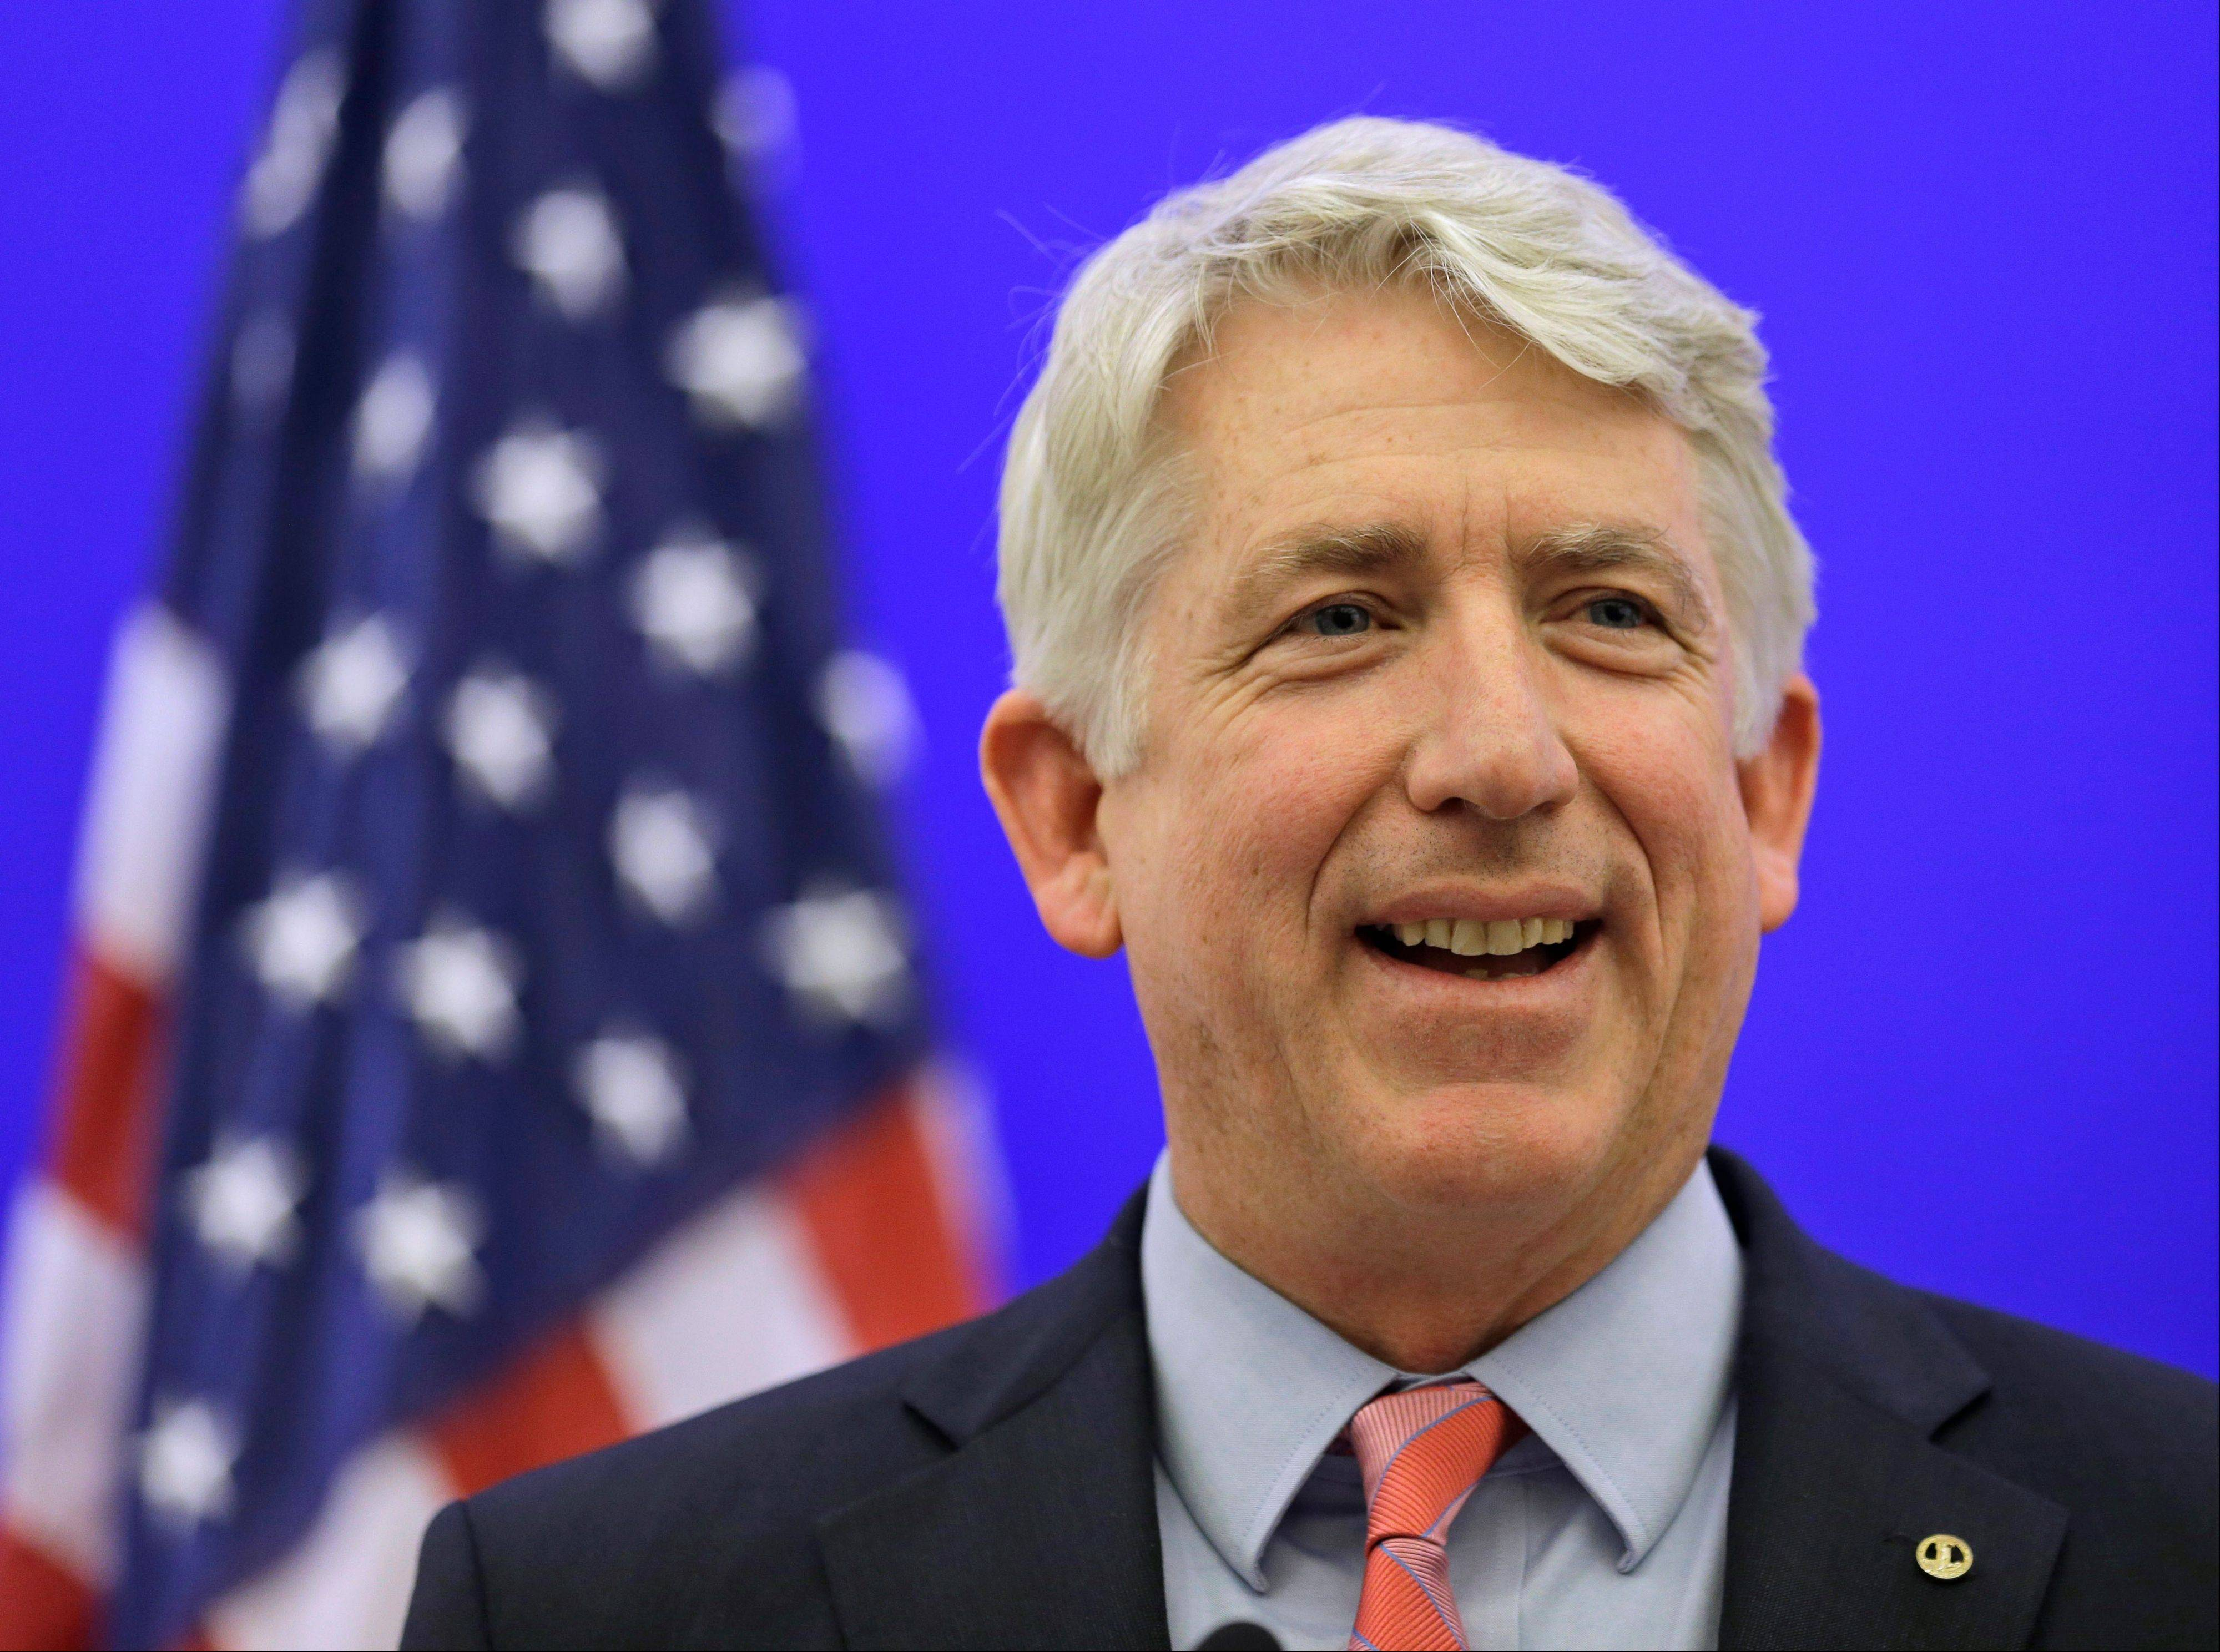 Associated Press File Photo Virginia Attorney General-elect Mark Herring has concluded that the state�s ban on gay marriage is unconstitutional and he will no longer defend it in federal lawsuits challenging it, his office said Thursday Jan. 23, 2014.